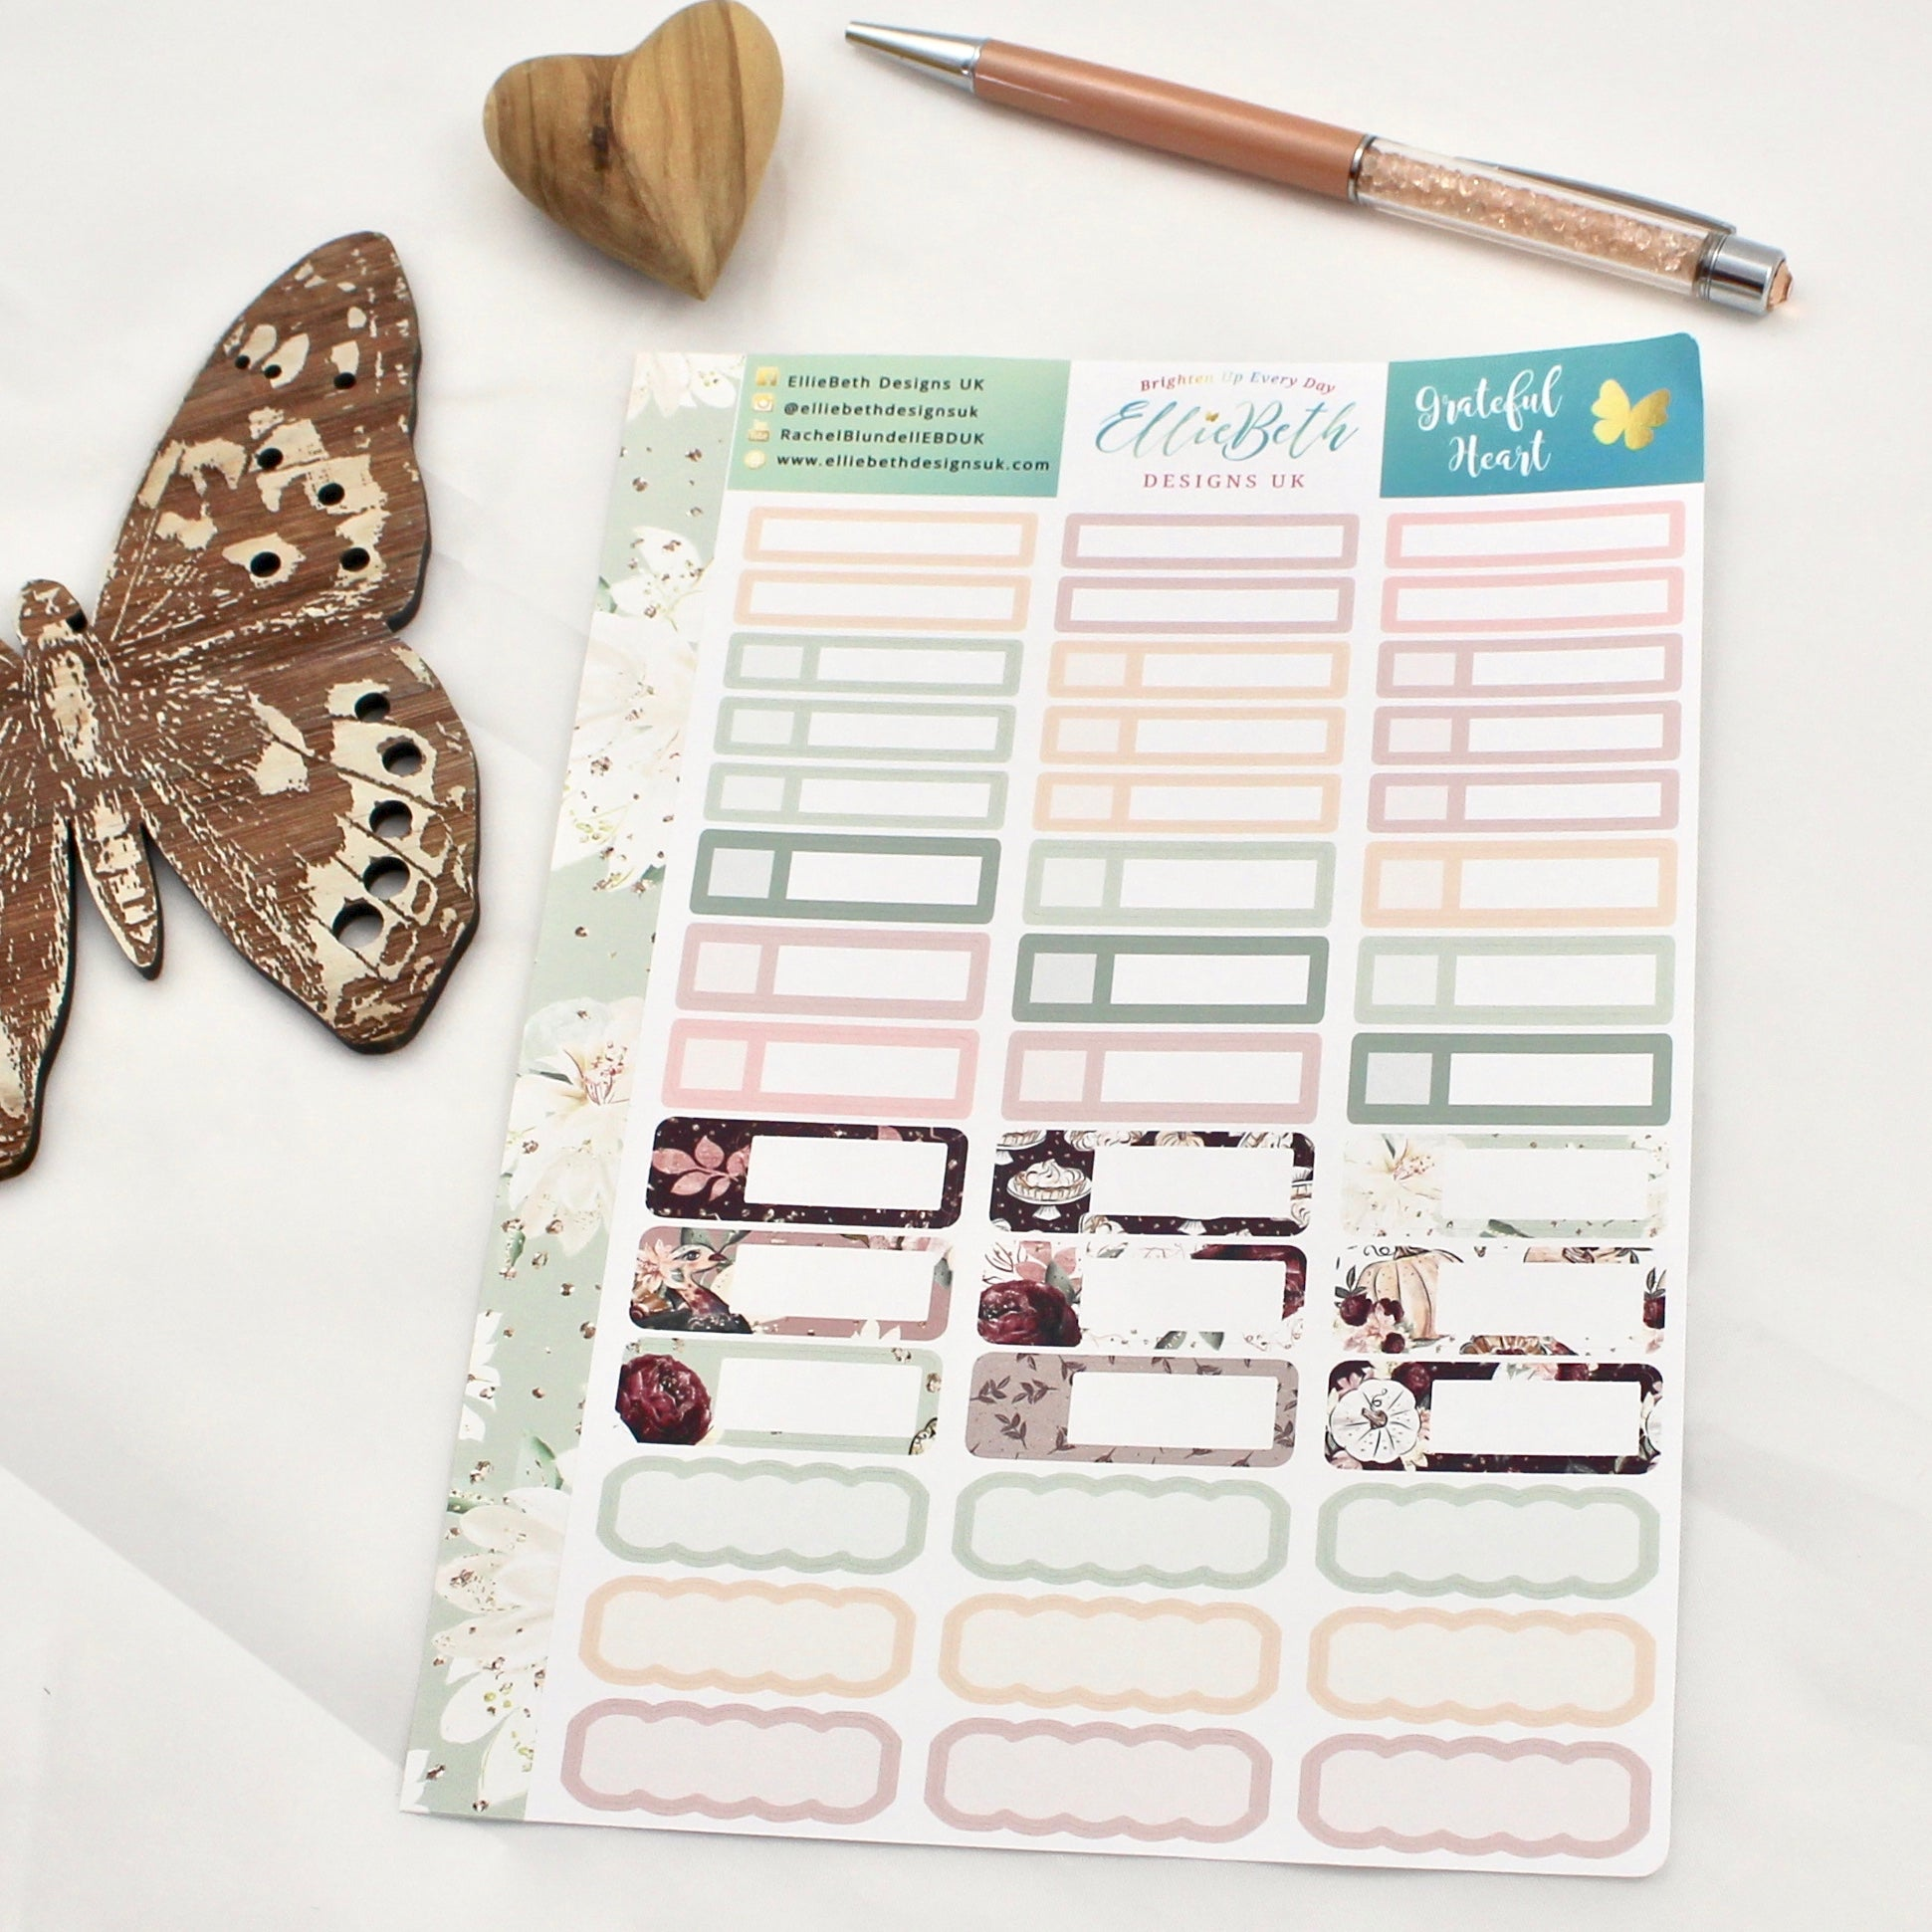 'Grateful Heart' -  Mixed Event Labels -  A5 binder ready planner stickers